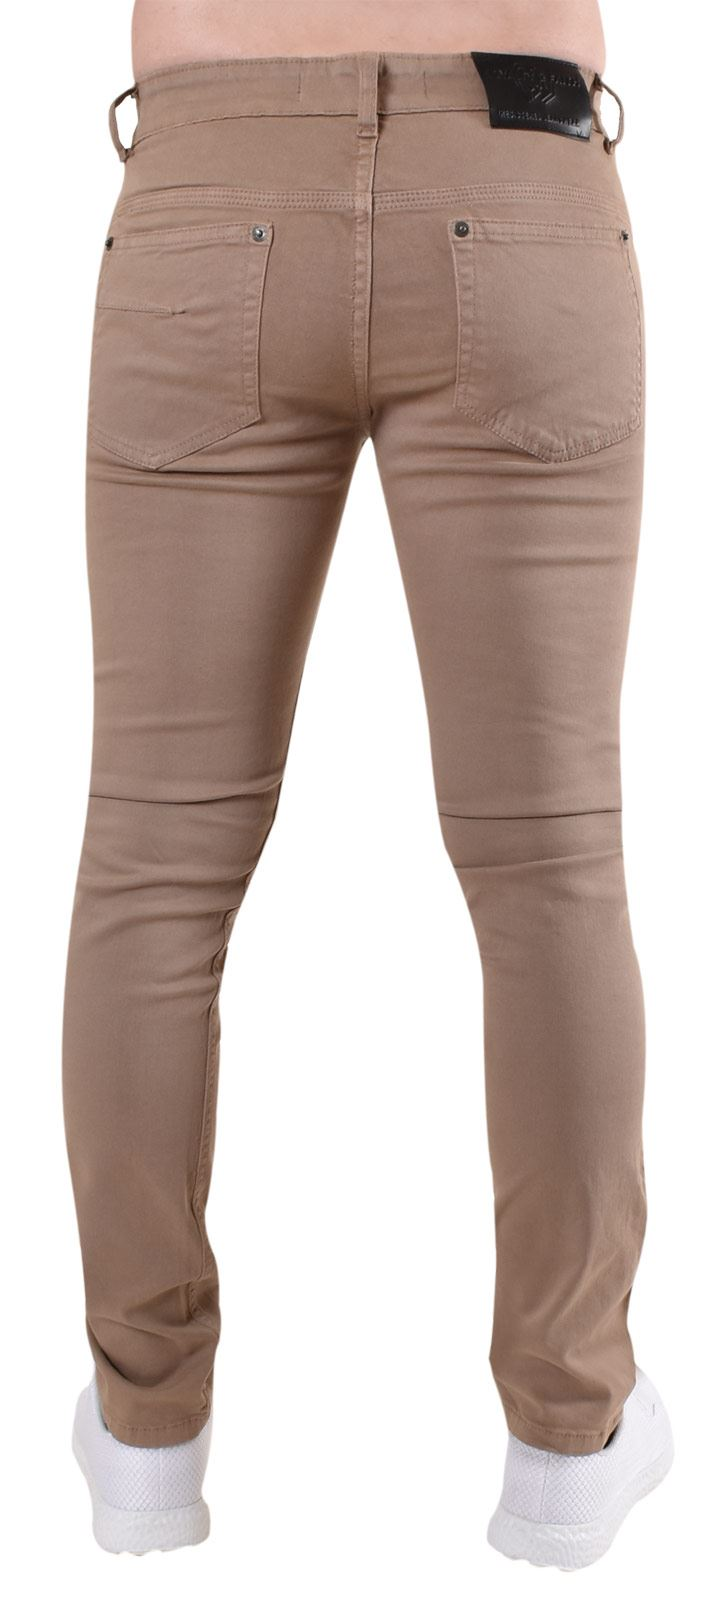 136000d718f89 ... Hommes Loyalty   Faith Jeans Moulant Coupe Skinny Skinny Coupe Coton  Extensible Pantalon 128089 ...